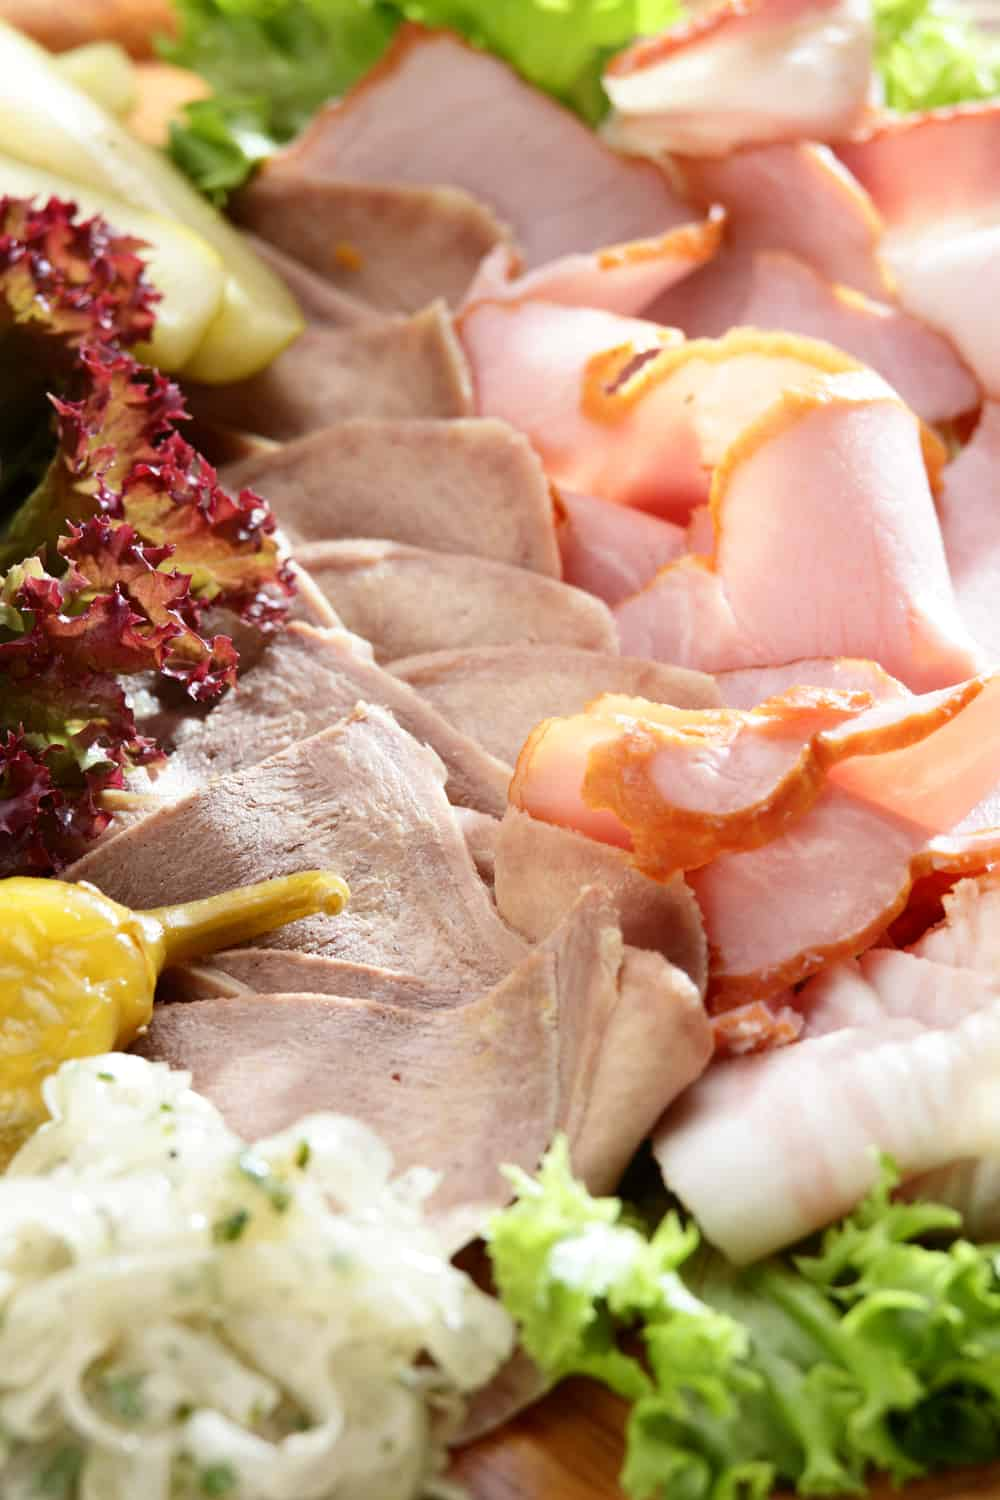 5 Tips to Tell if Deli Meat Has Gone Bad